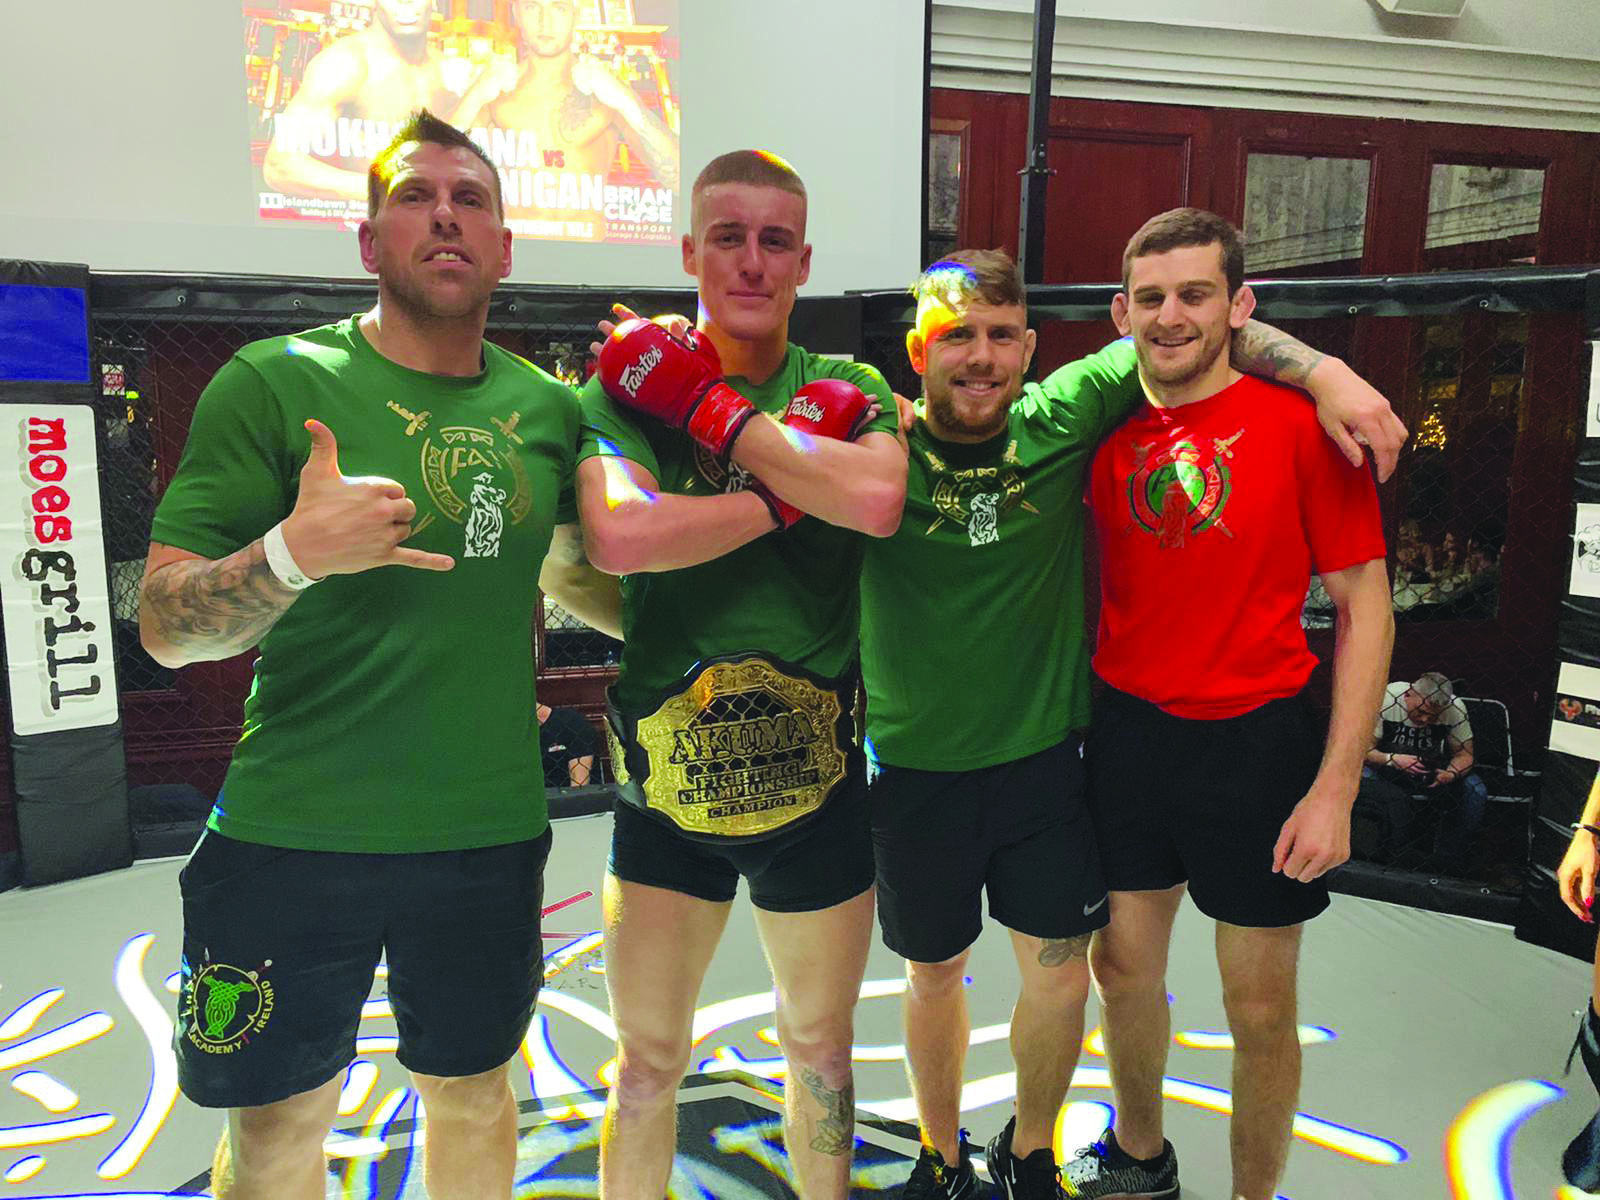 Fight Academy head coach Liam Shannon with Paddy McCorry, coach Patrick McAlister and Cage Warriors world lightweight champion Joe McColgan